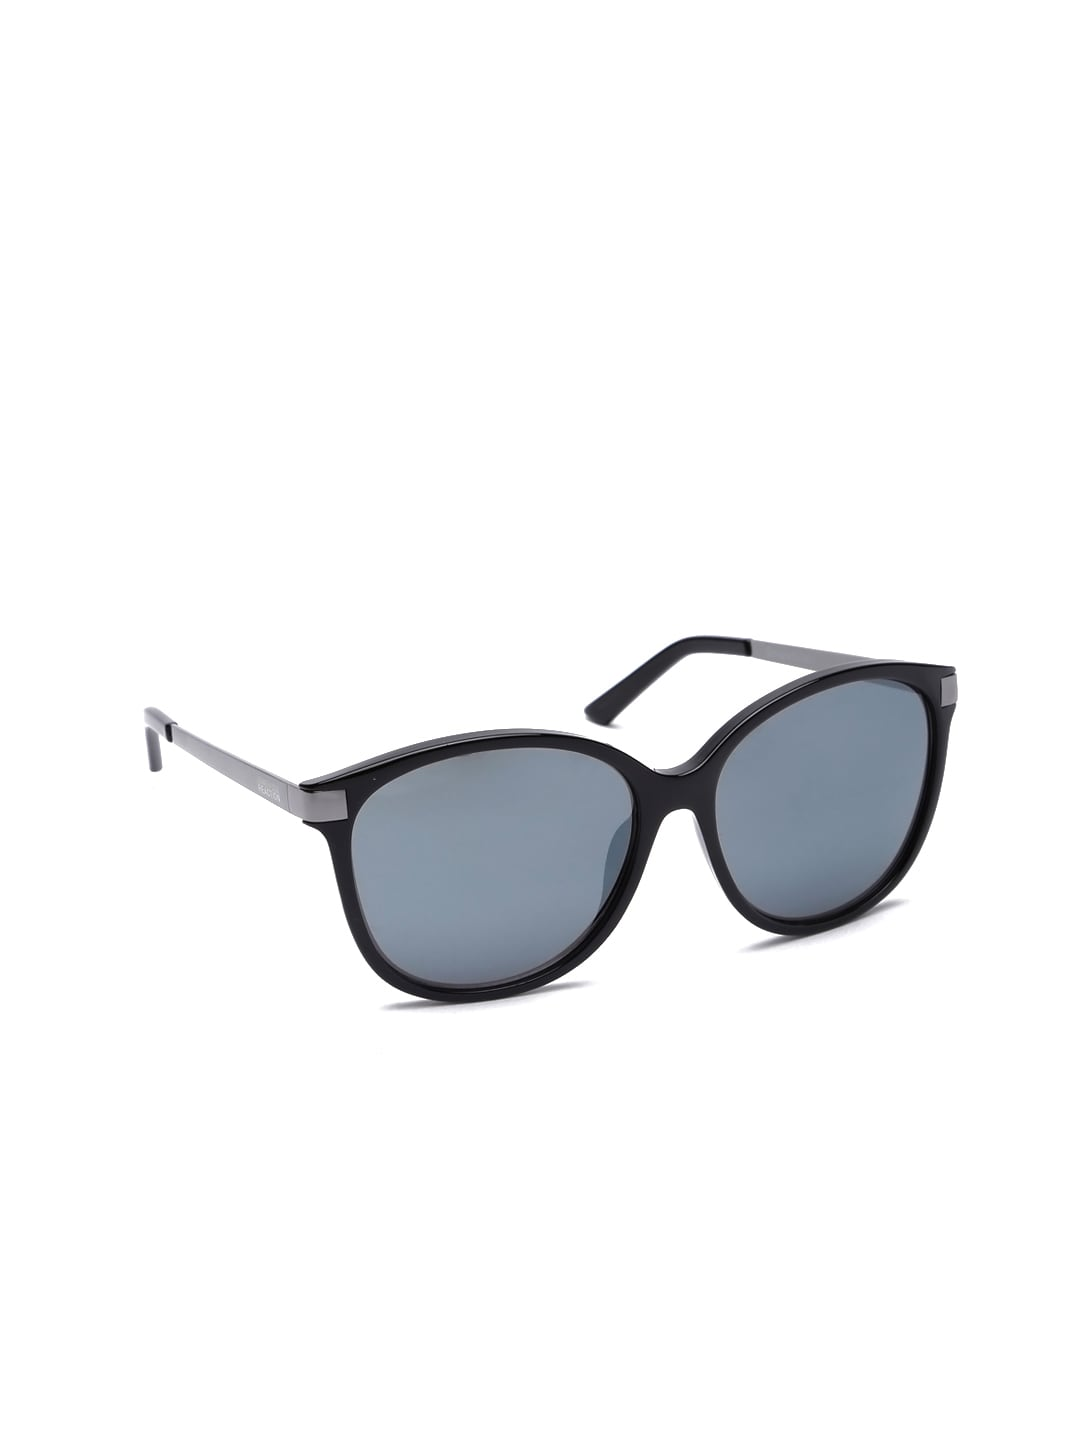 d01a956b32681 Kenneth Cole - Buy Kenneth Cole online in India